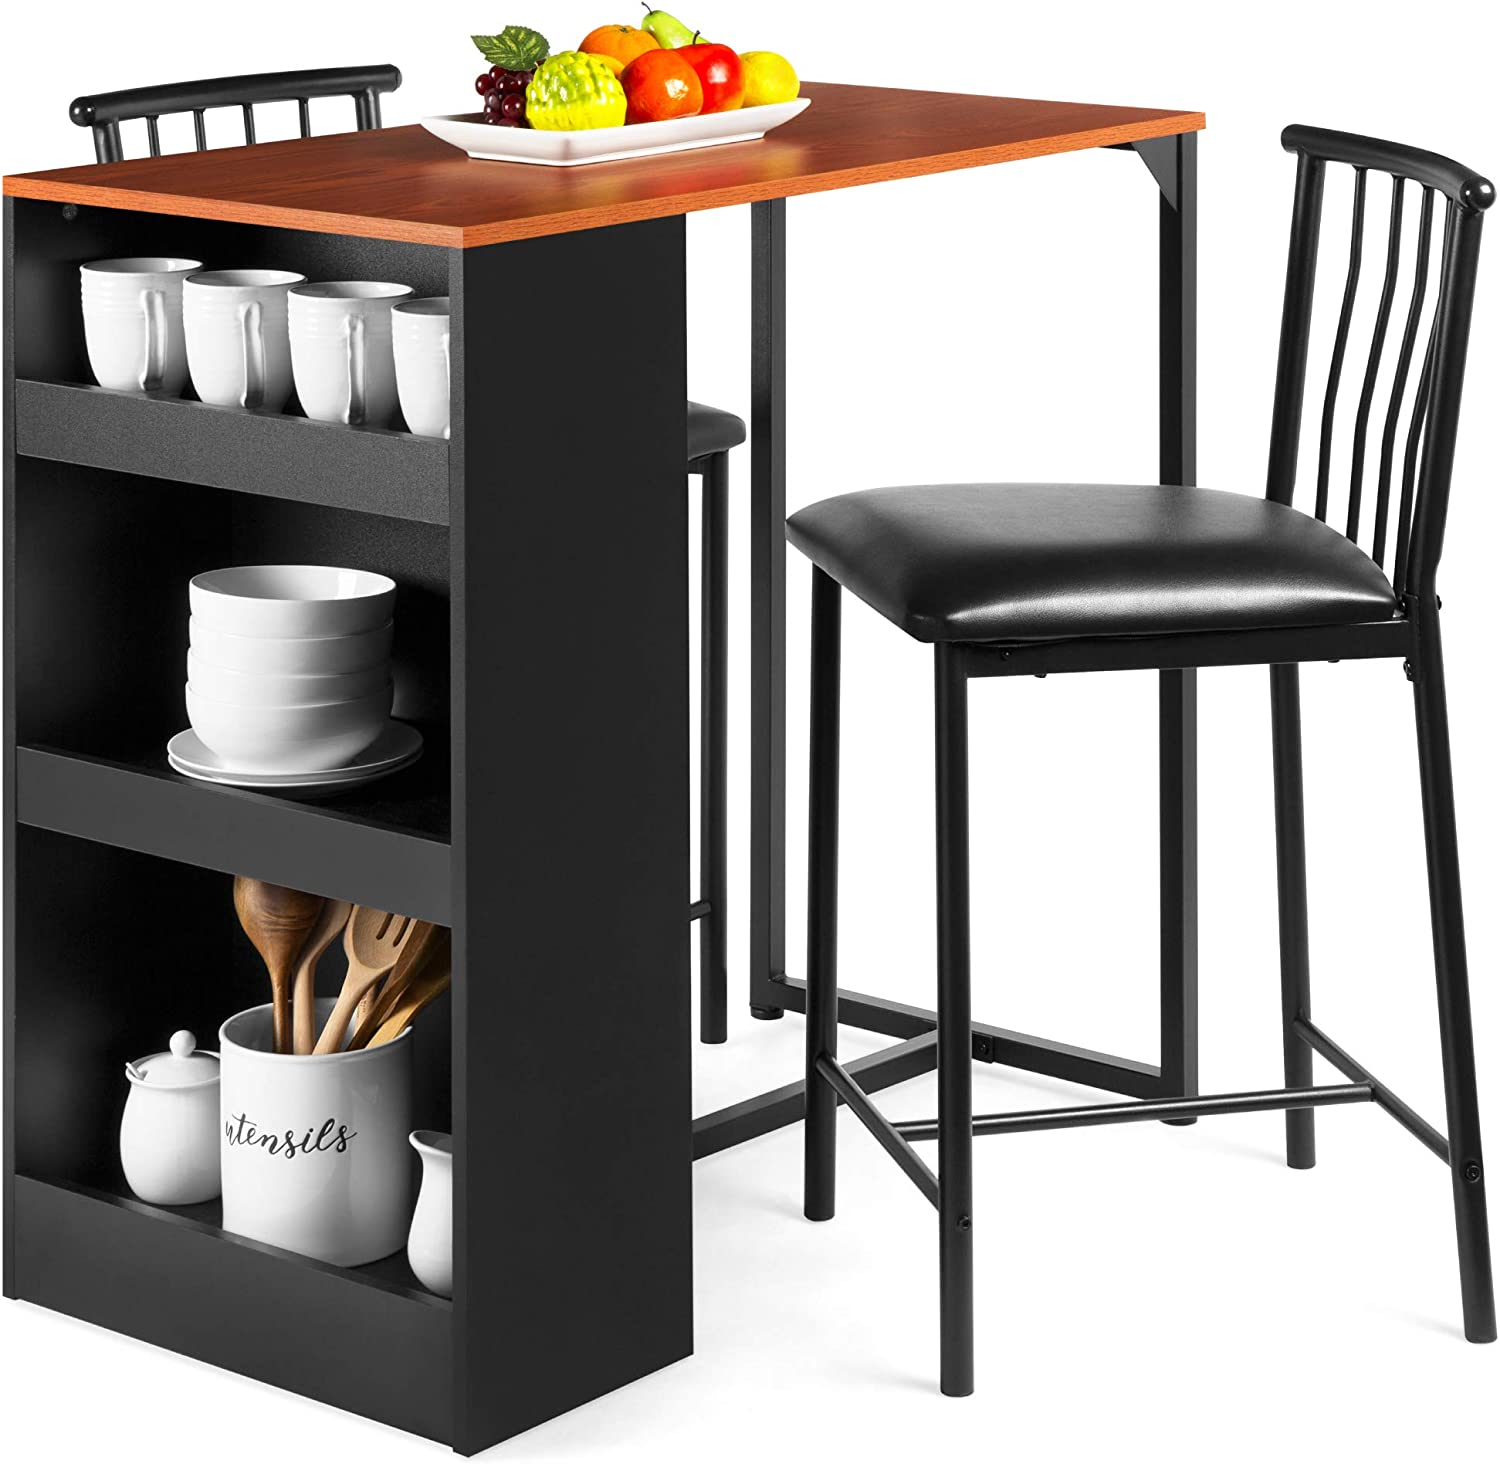 Amazon Com Best Choice Products 3 Piece 36in Wooden Counter Height Dining Table Set For Kitchen Dining Room W Storage Shelves Metal Frame 2 Barstools Espresso Table Chair Sets